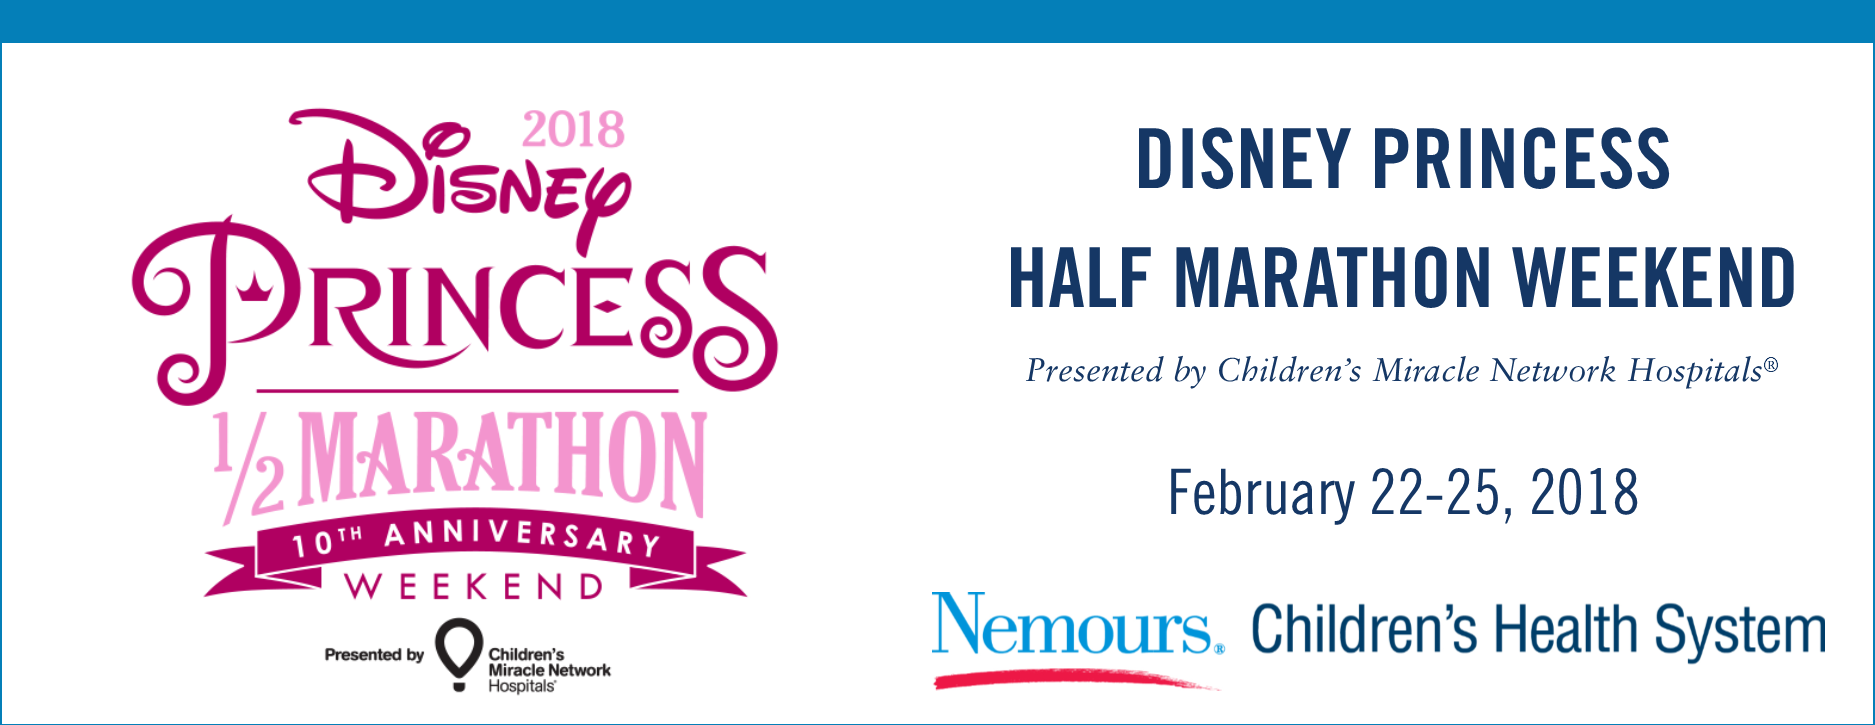 2018 Disney Princess Half Marathon